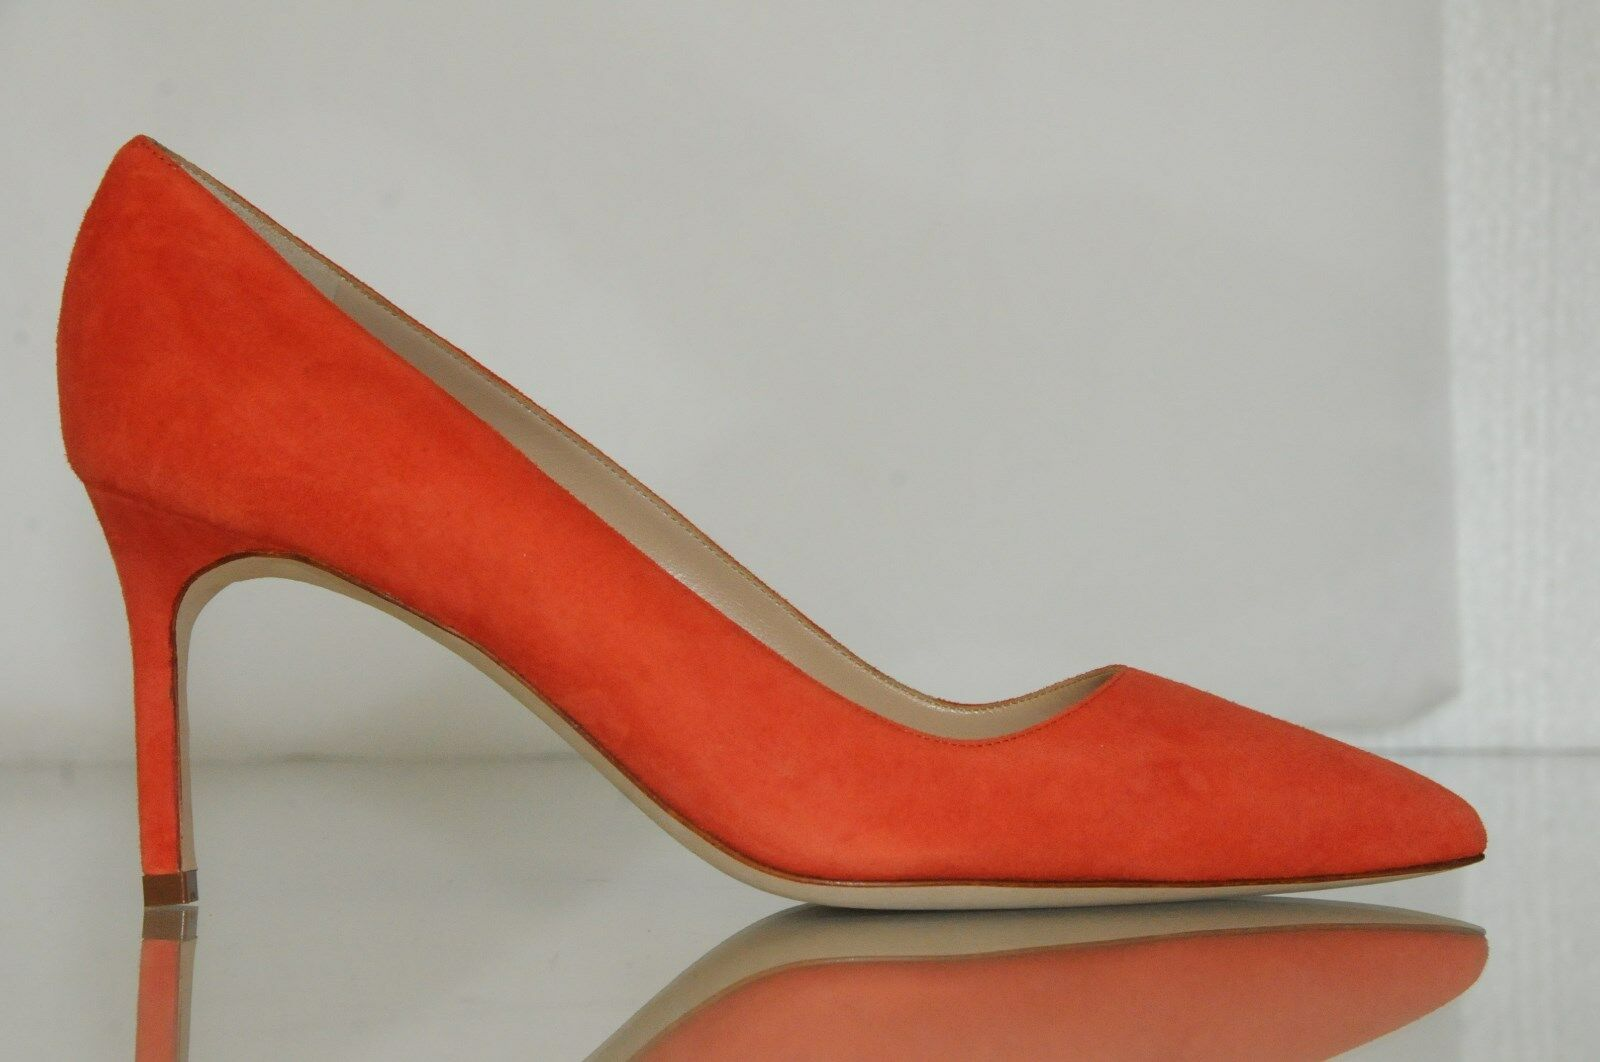 New Manolo Blahnik Blahnik Blahnik BB 70 orange Suede shoes Heels Pumps 36.5 40 40.5 6d8470